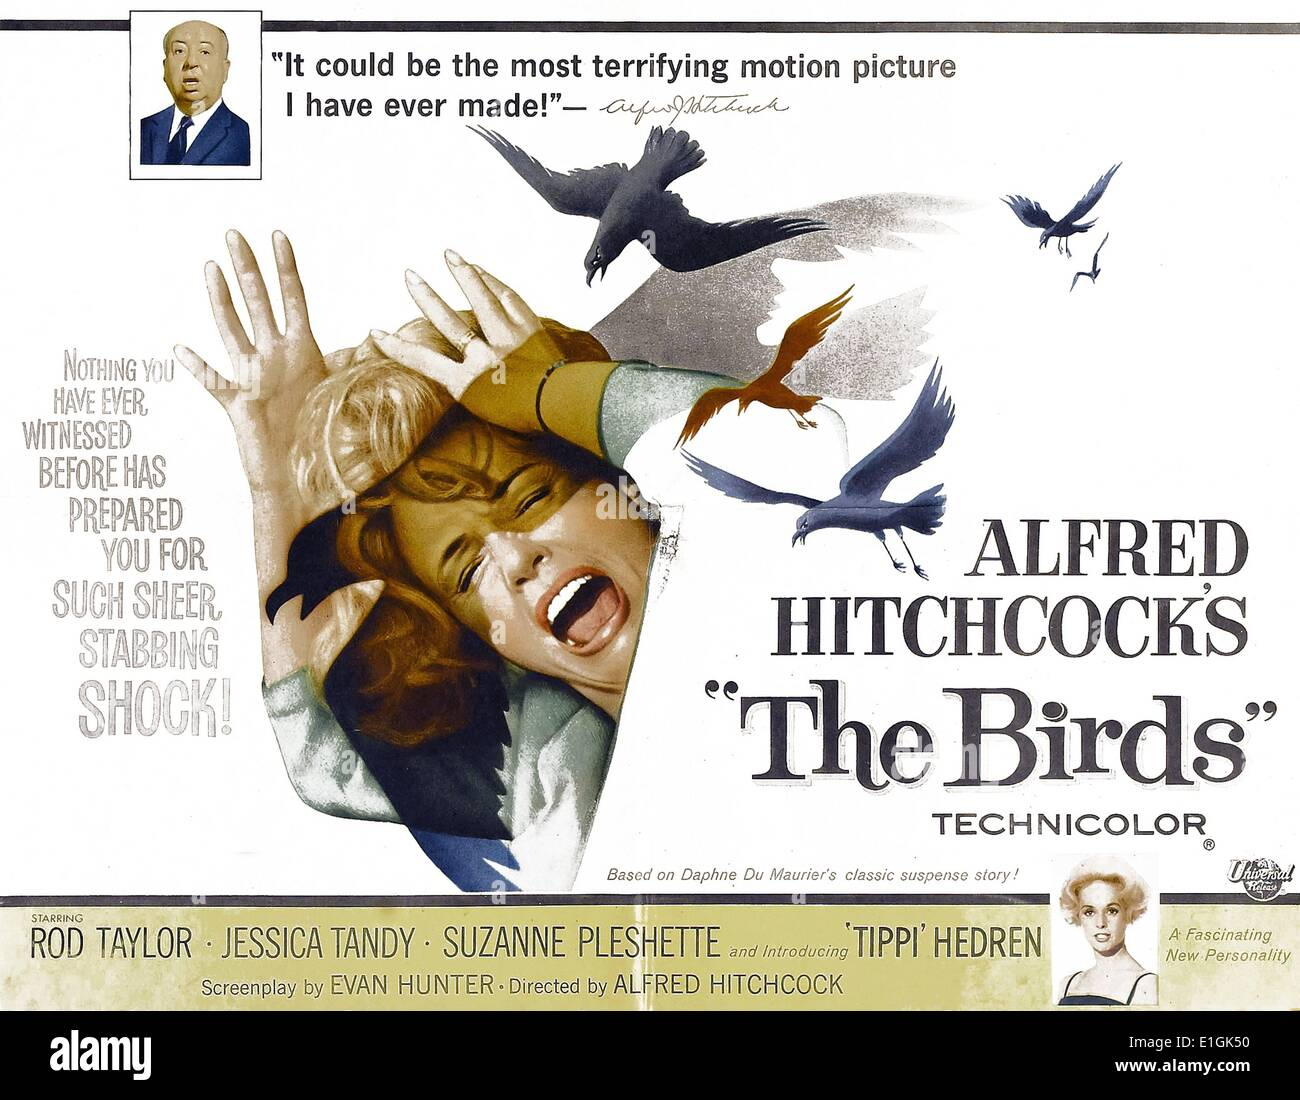 'The Birds' starring Rod Taylor, Jessica Tandy, Suzanne Pleshette and 'Tippi' Hedren a 1963 suspense/horror film. - Stock Image